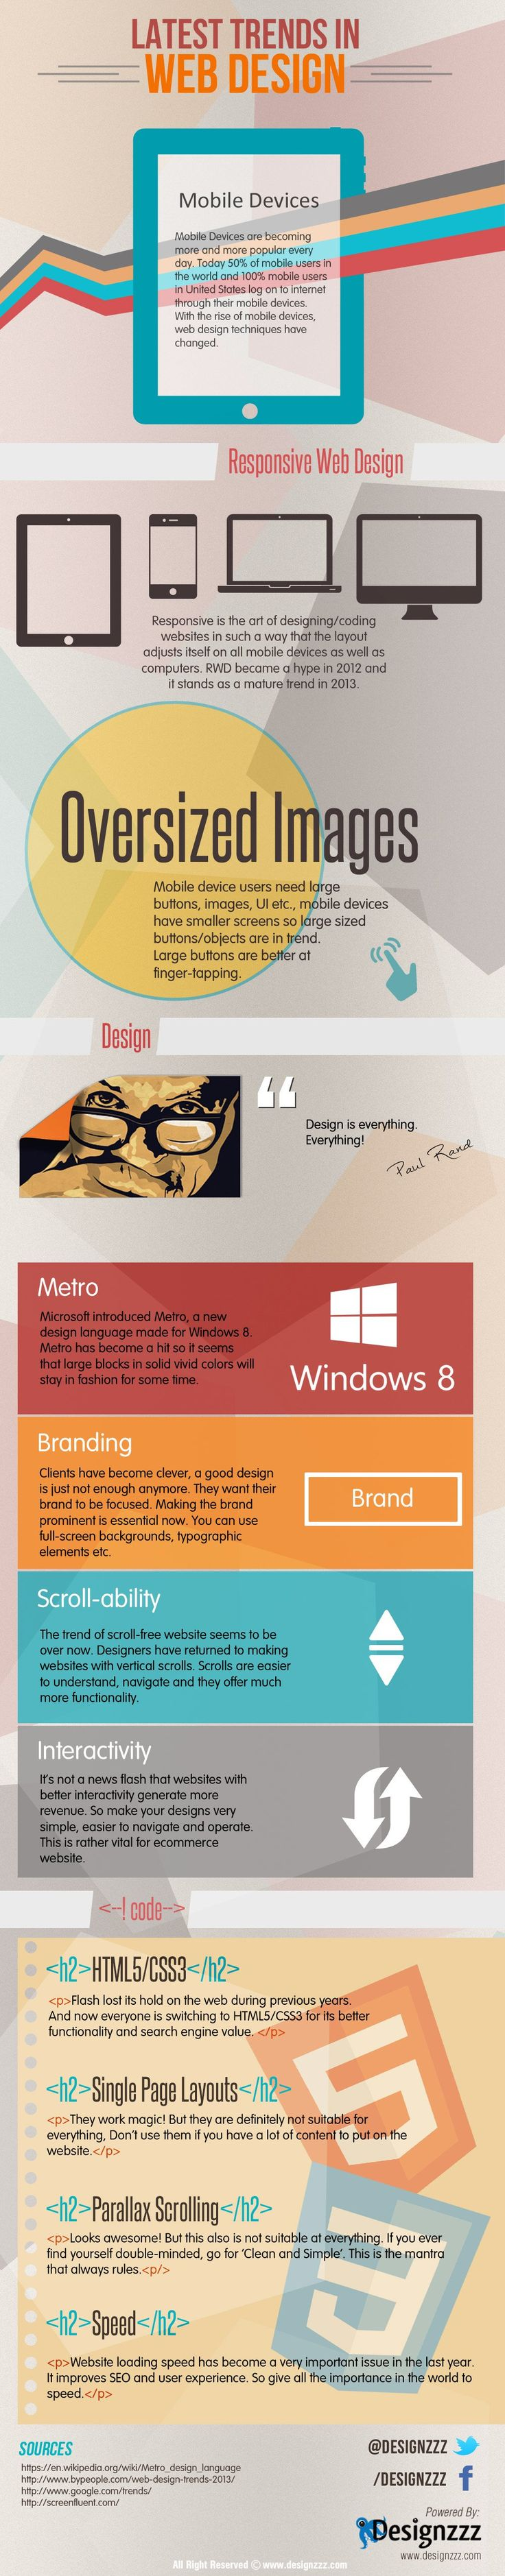 Web Design Trends http://fleetheratrace.blogspot.co.uk/2015/02/how-to-optimise-your-website-landing-page-for-better-conversions.html #web #design #webdesign #tips and tricks #infographic